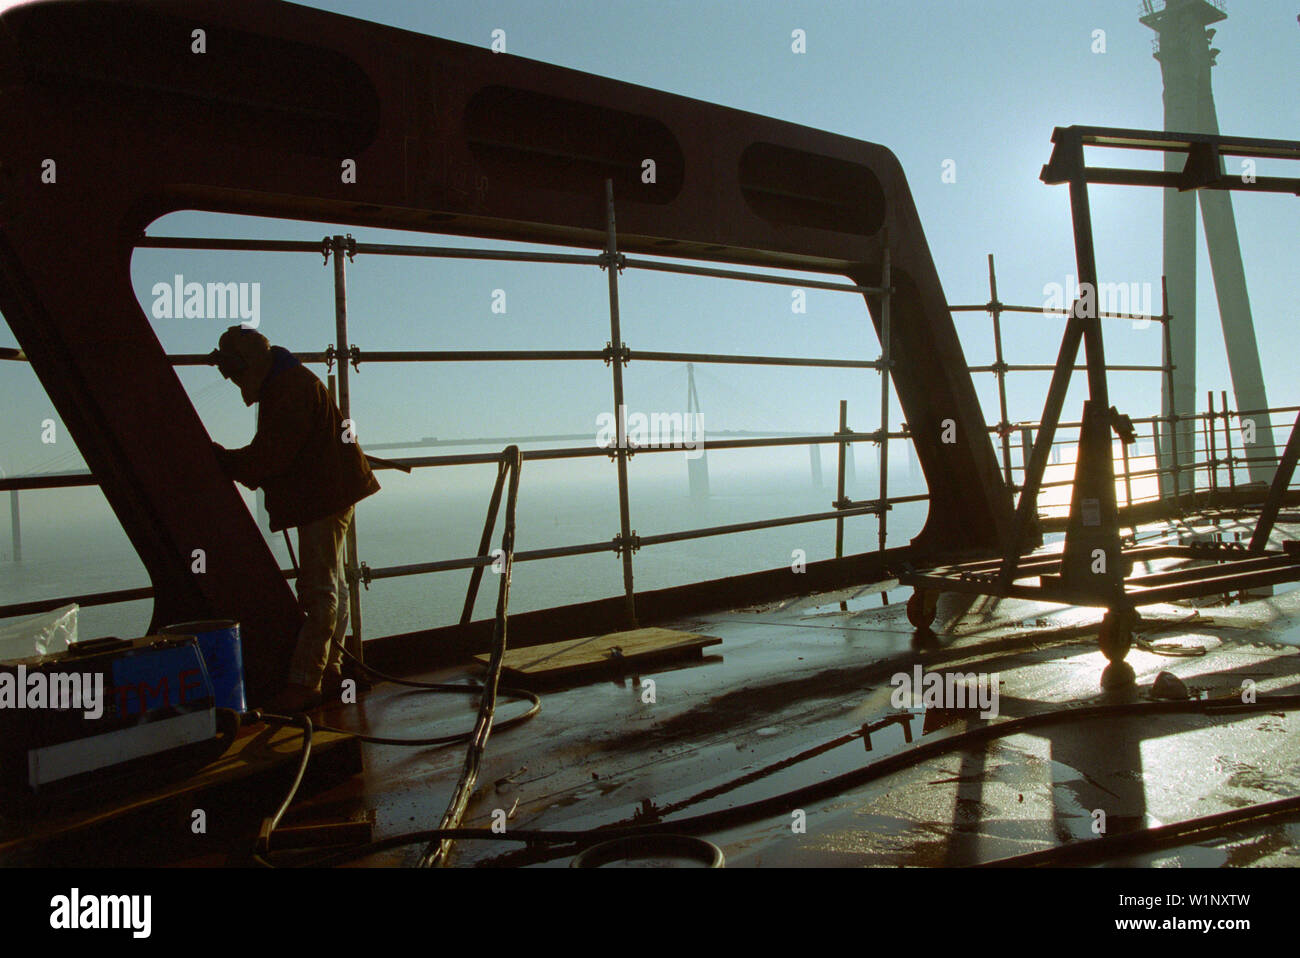 Working, steel construction, dry dock, Queen Mary 2, Saint-Nazaire, France - Stock Image